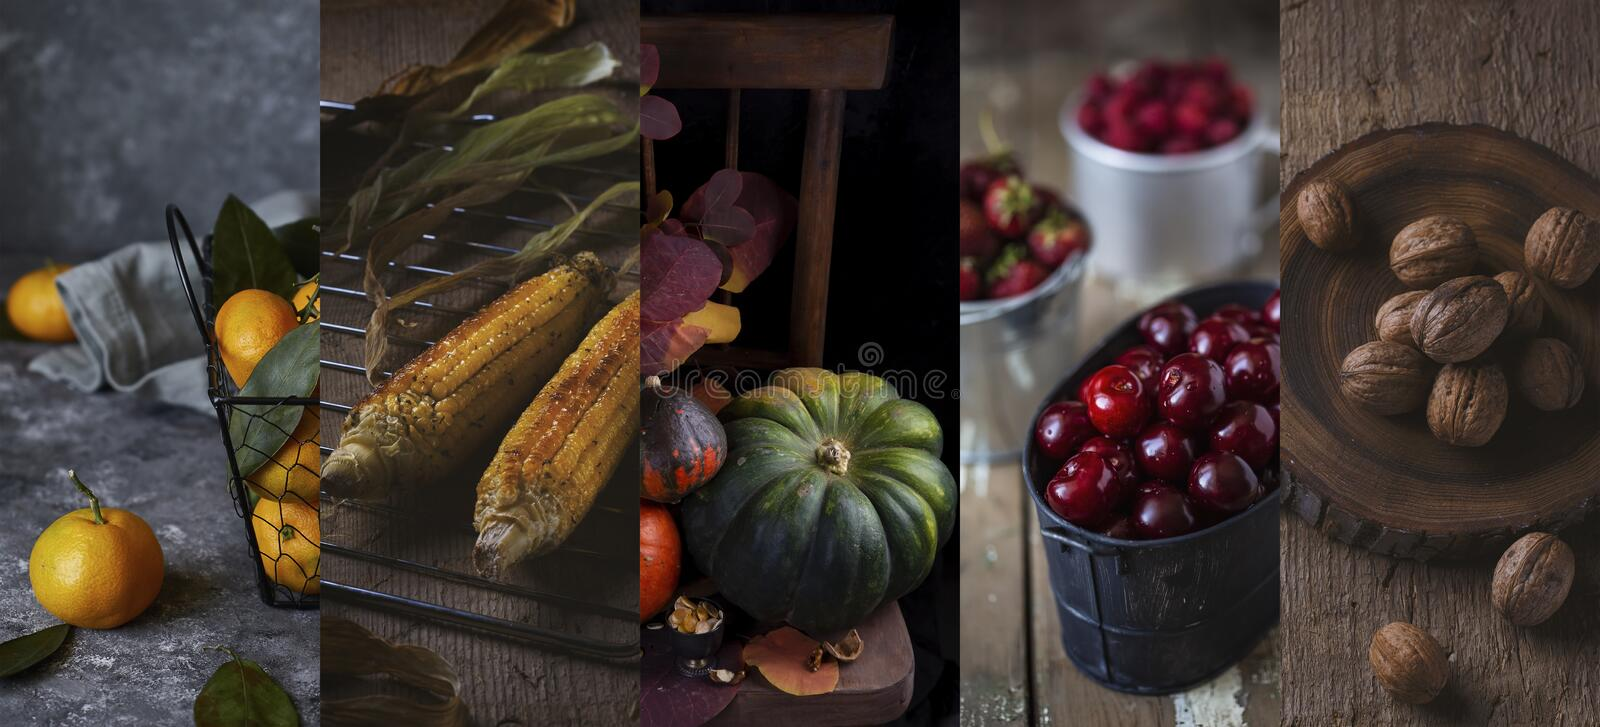 Collage of photos of autumn vegetables. Harvest of pumpkins, walnut, corn, berries, tangerines royalty free stock photo